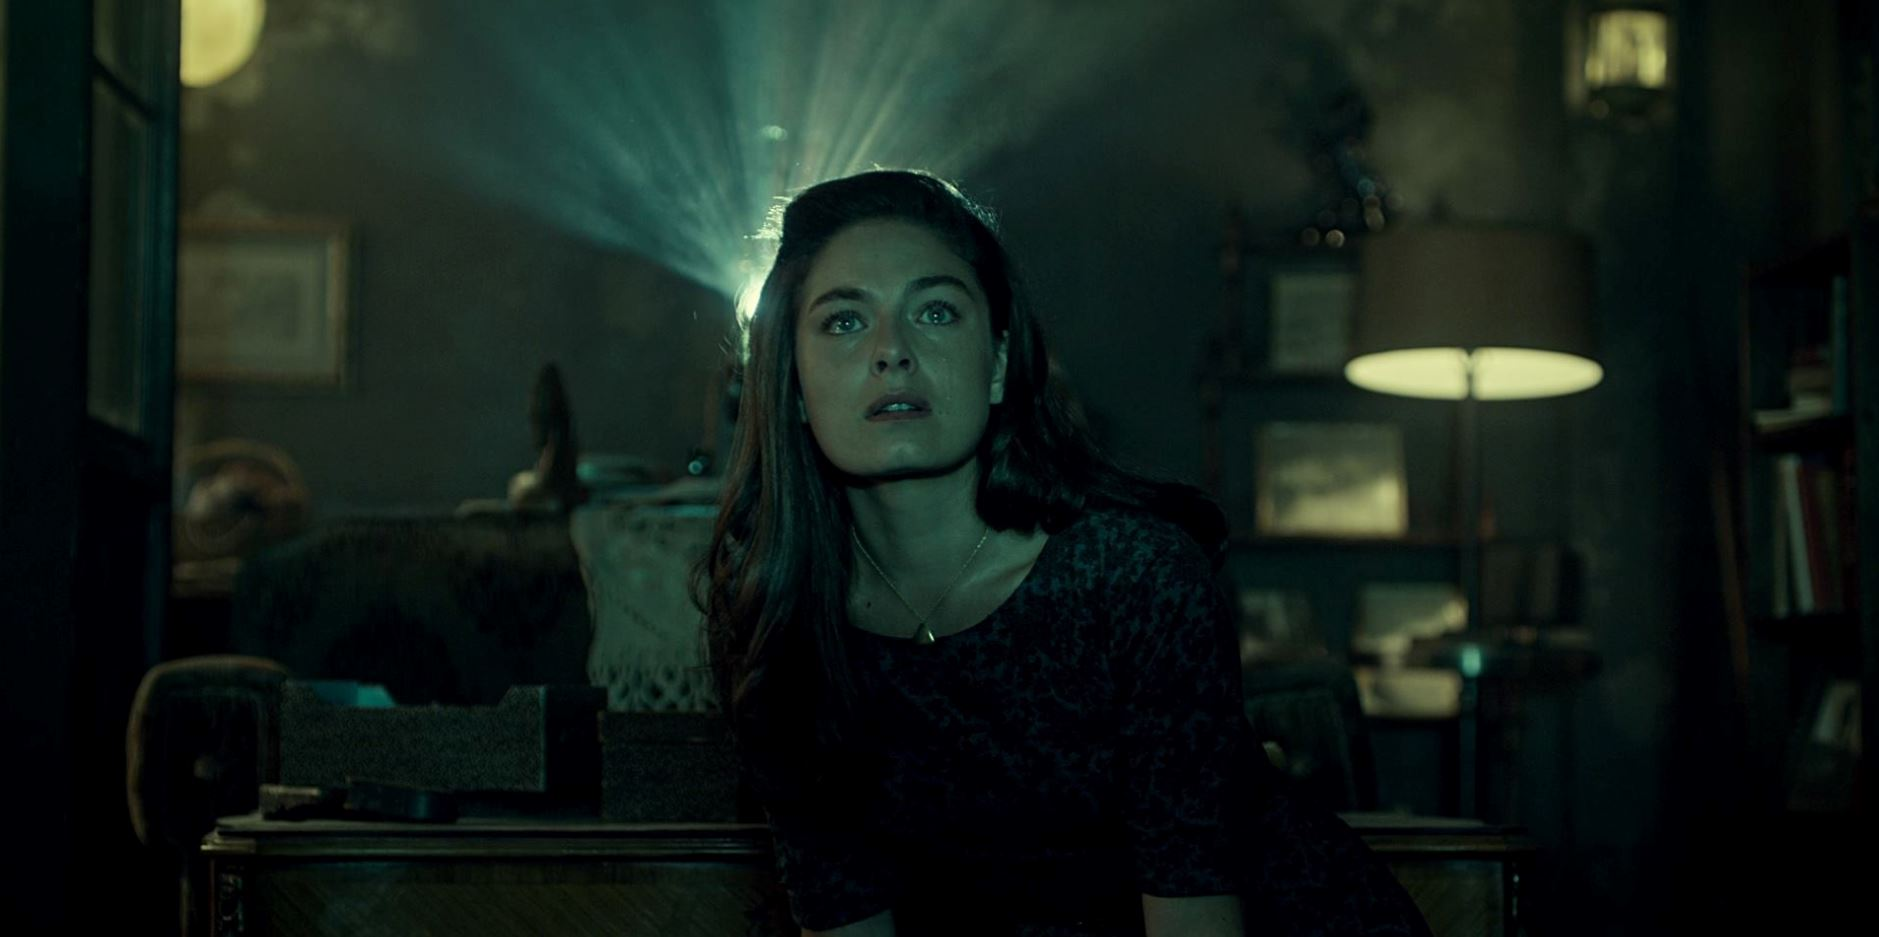 Alexa Davalos as Juliana in The Man in the High Castle episode 2 'Sunrise' Review.